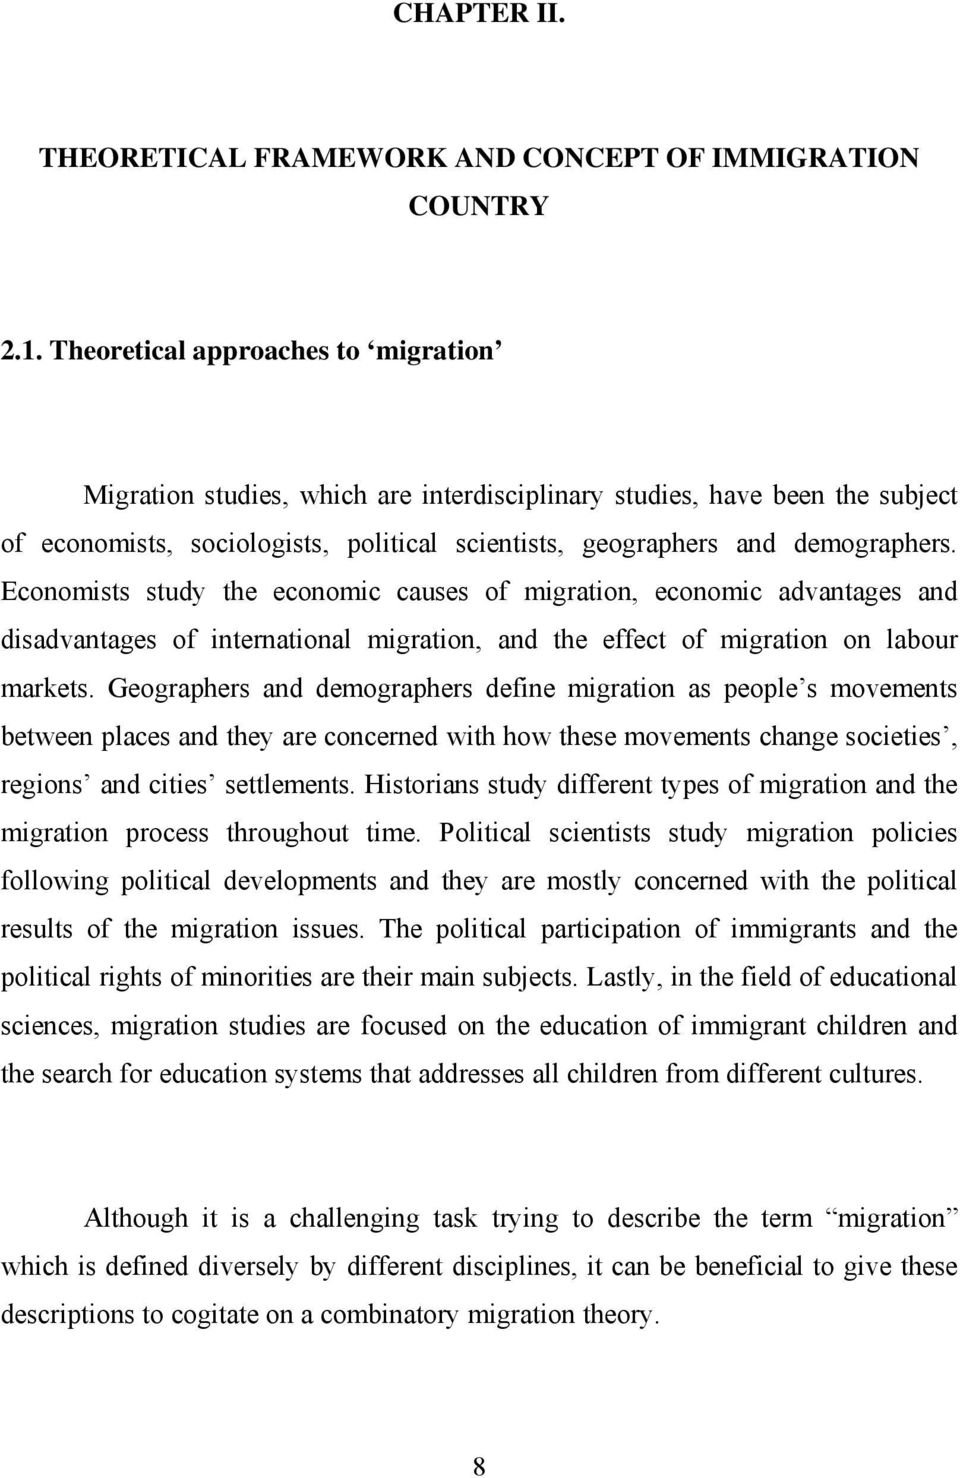 Economists study the economic causes of migration, economic advantages and disadvantages of international migration, and the effect of migration on labour markets.